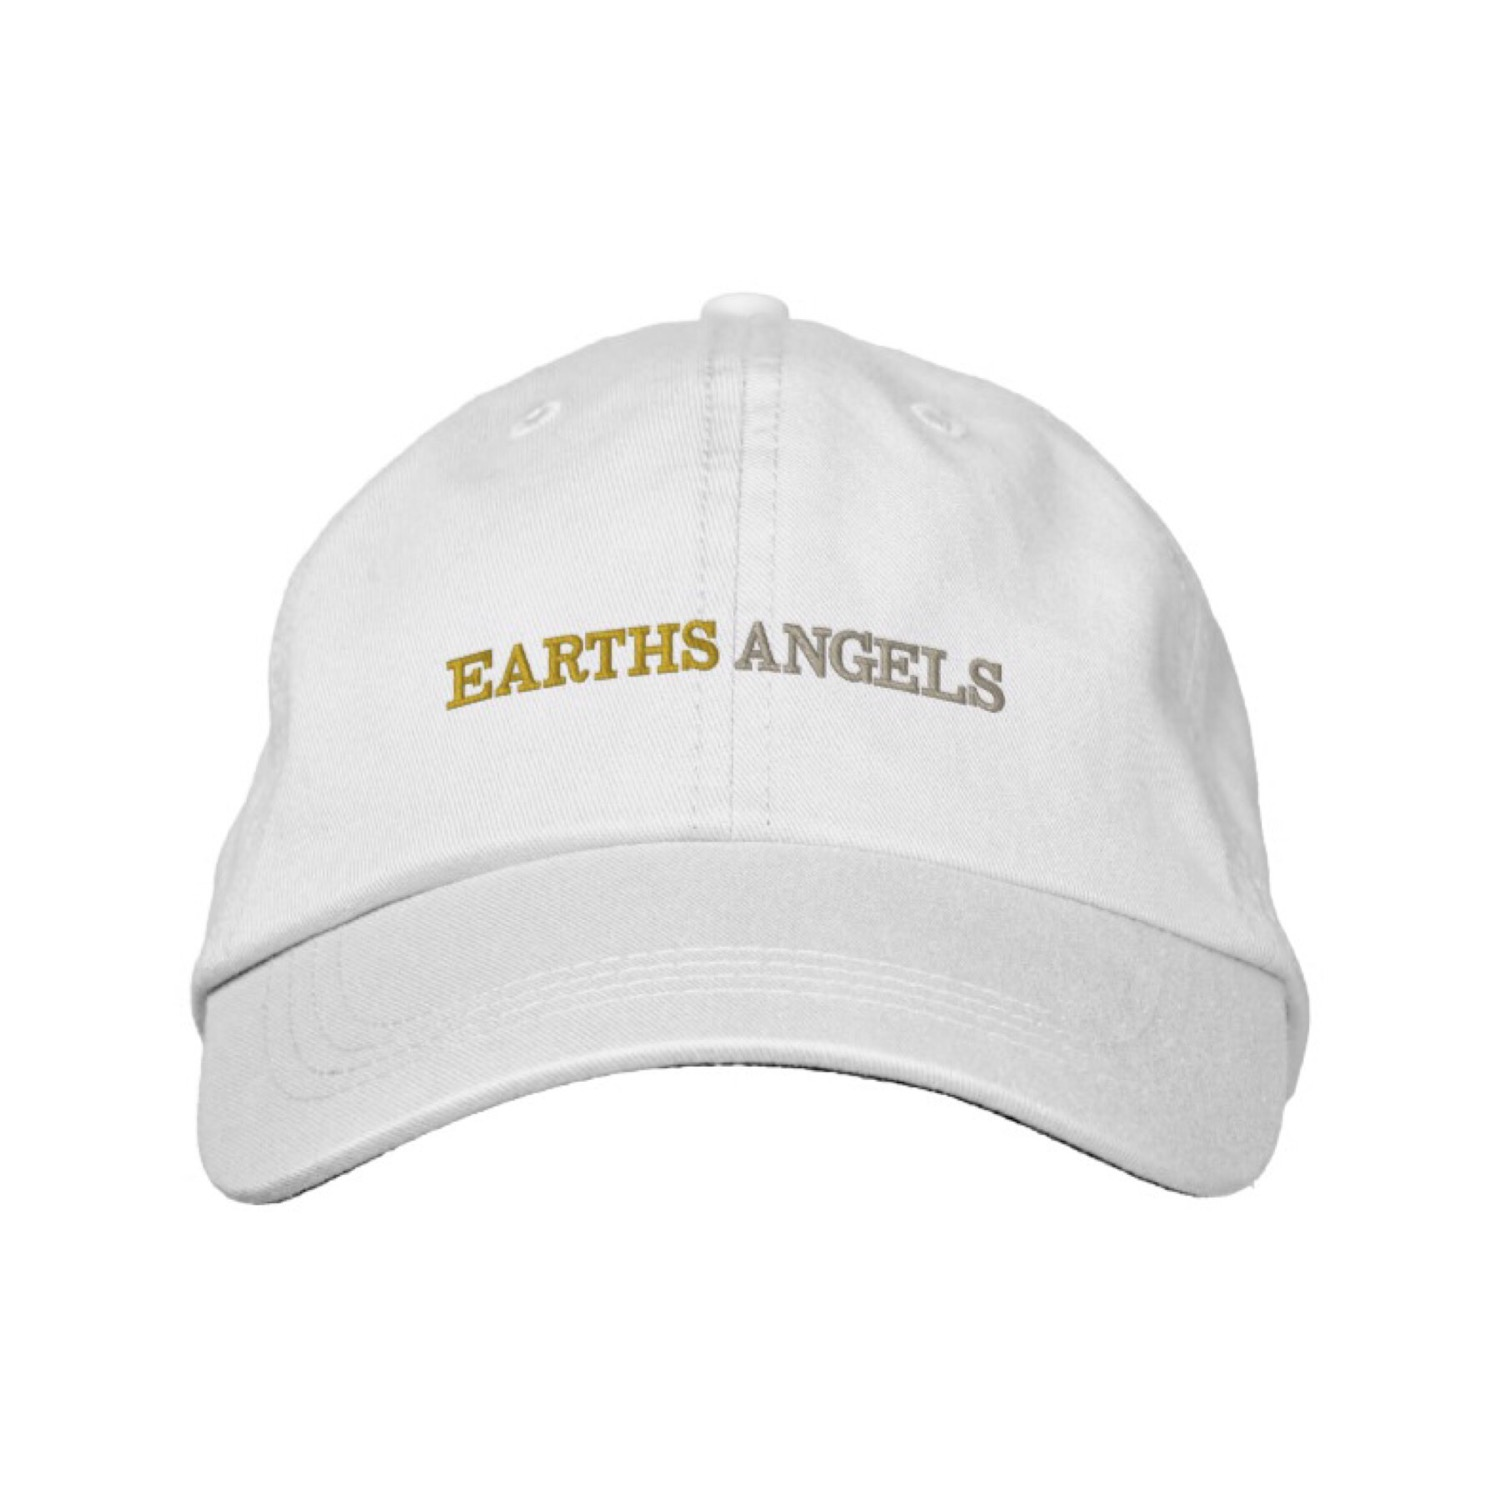 Earth's Angels official baseball cap